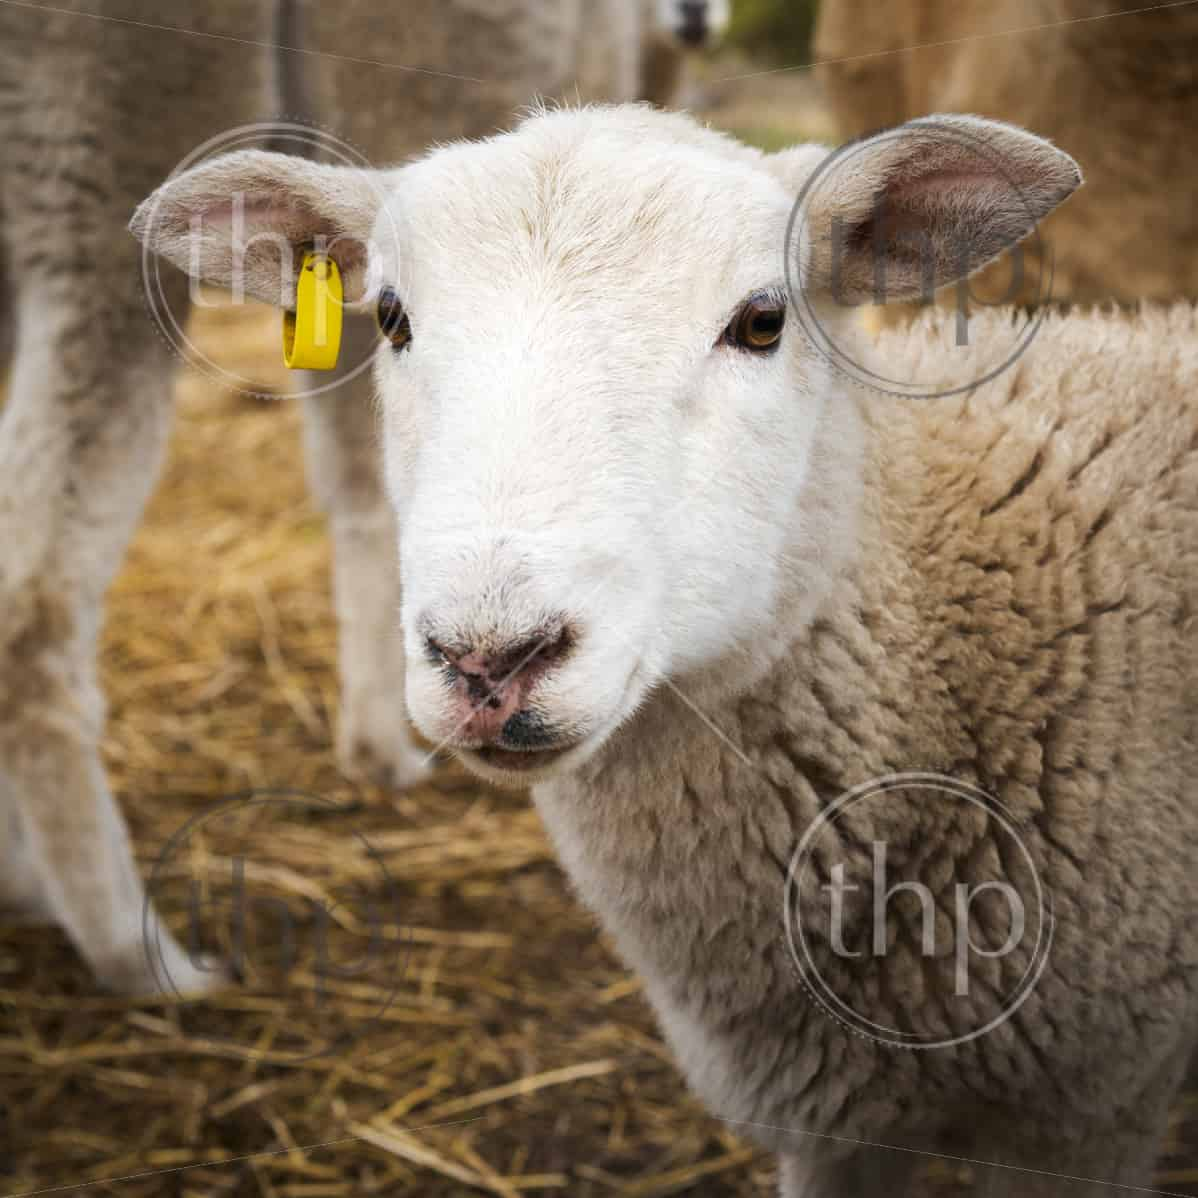 Cute young lamb with clean white face looking into camera